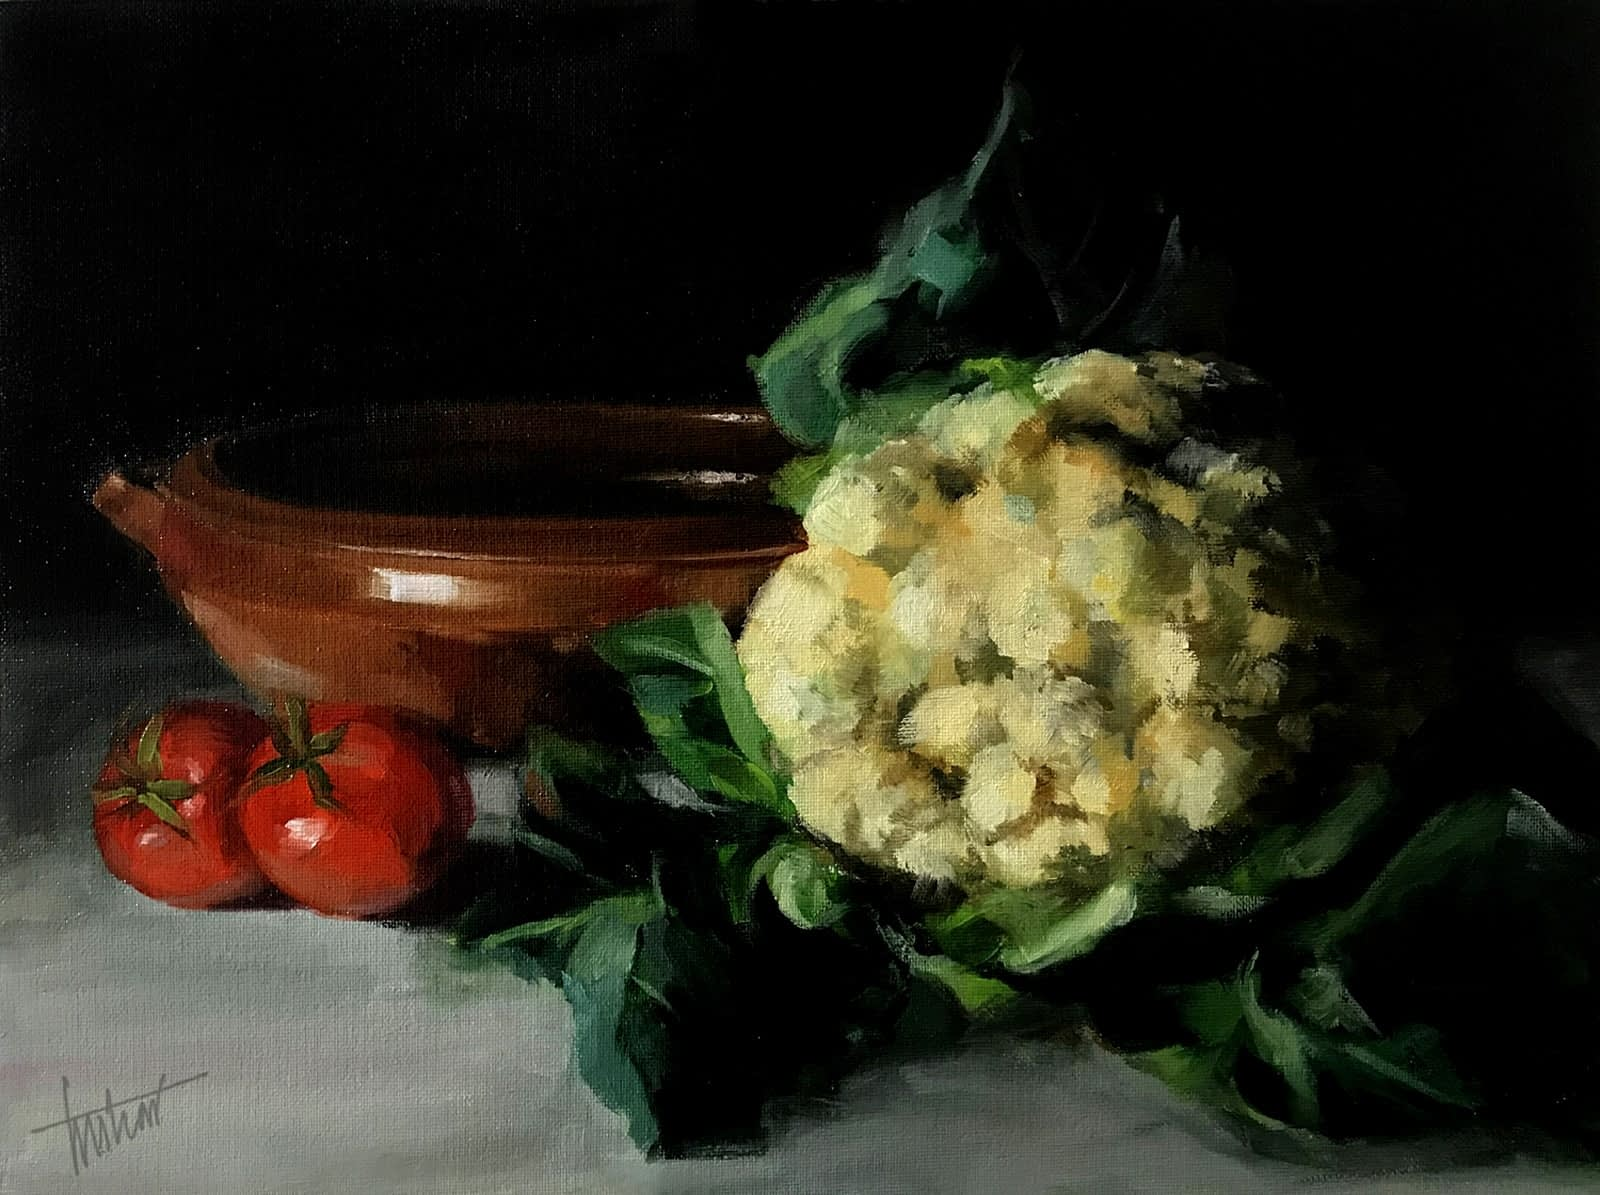 still-life_cauliflower-and-tomatoes_tushar-sabale-1600-x-900